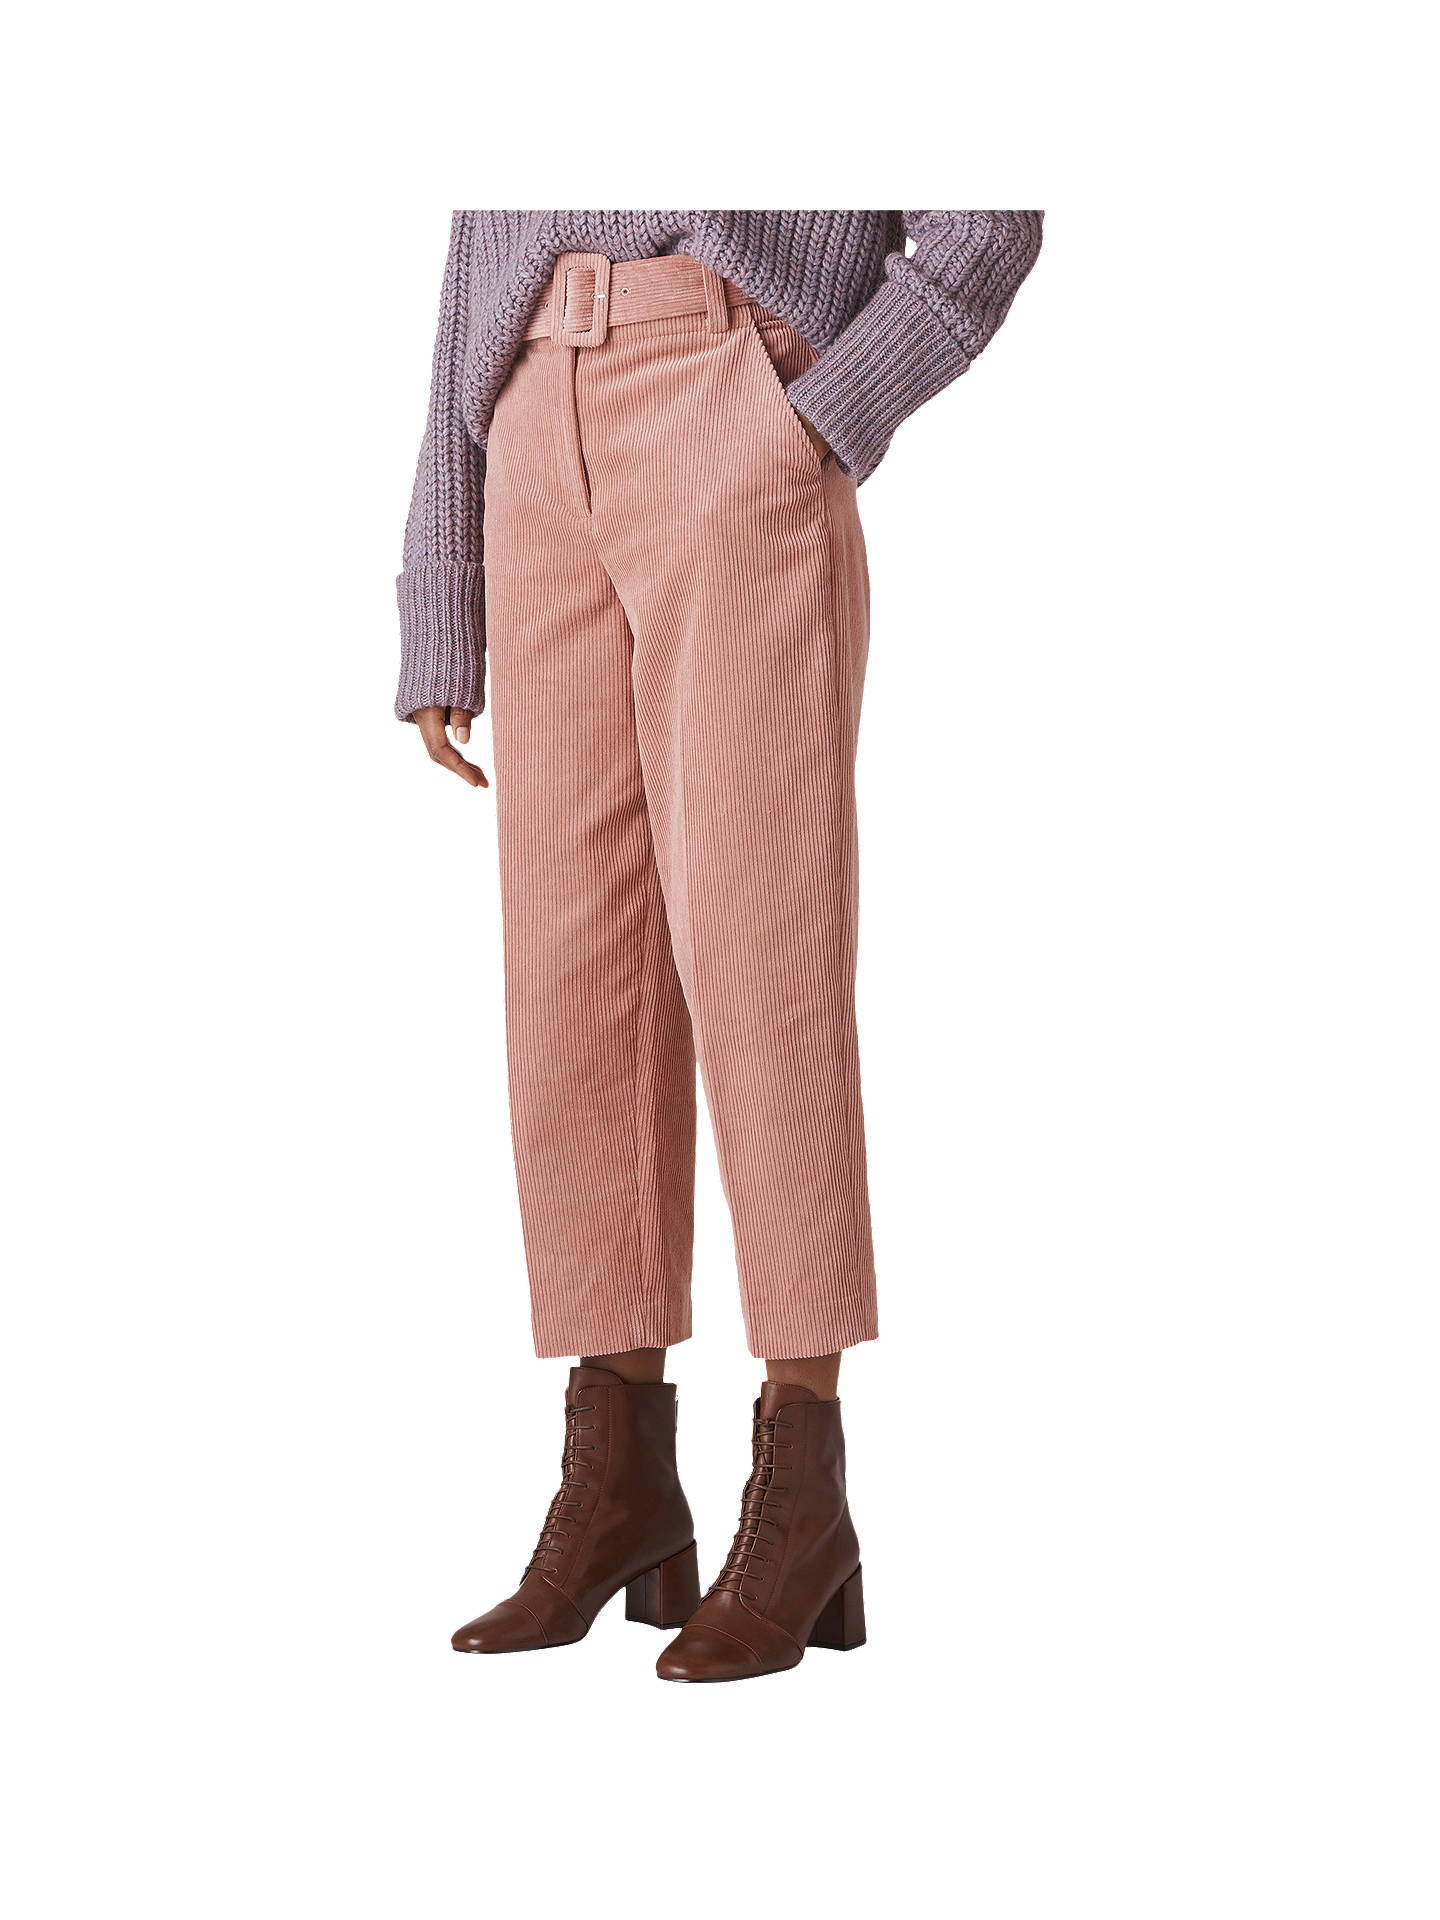 BuyWhistles Corduroy Belted Cropped Trousers, Pink, 10 Online at johnlewis.com